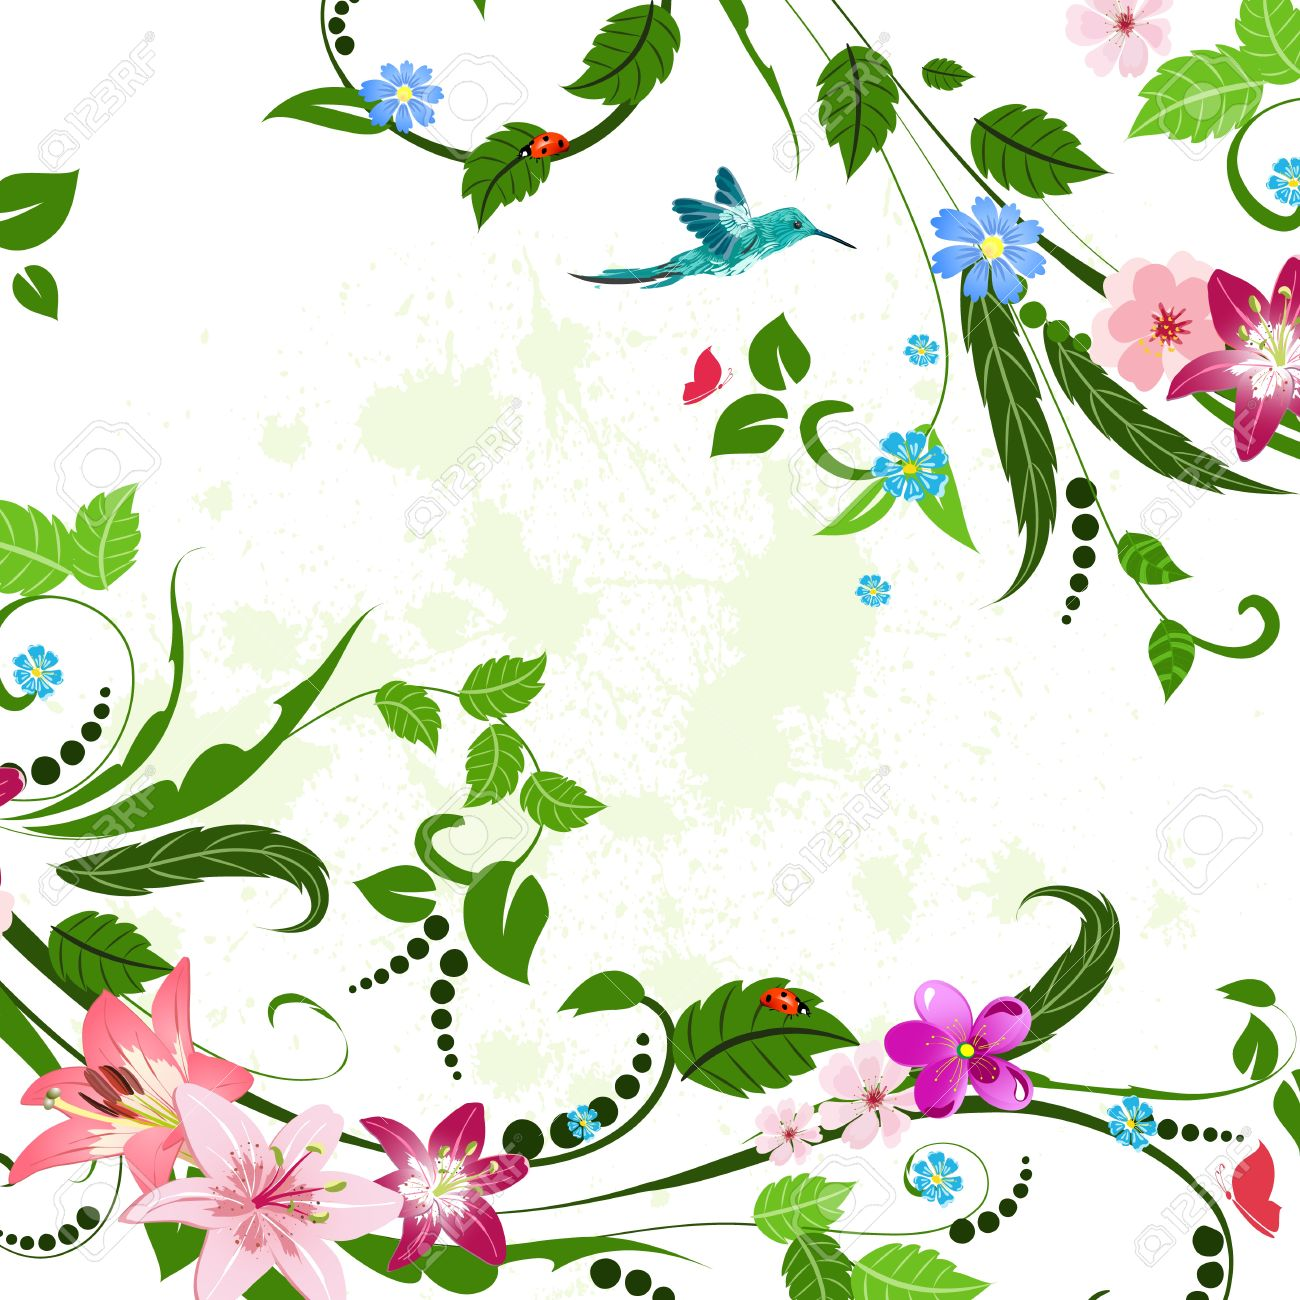 flower border stock photos. royalty free flower border images and